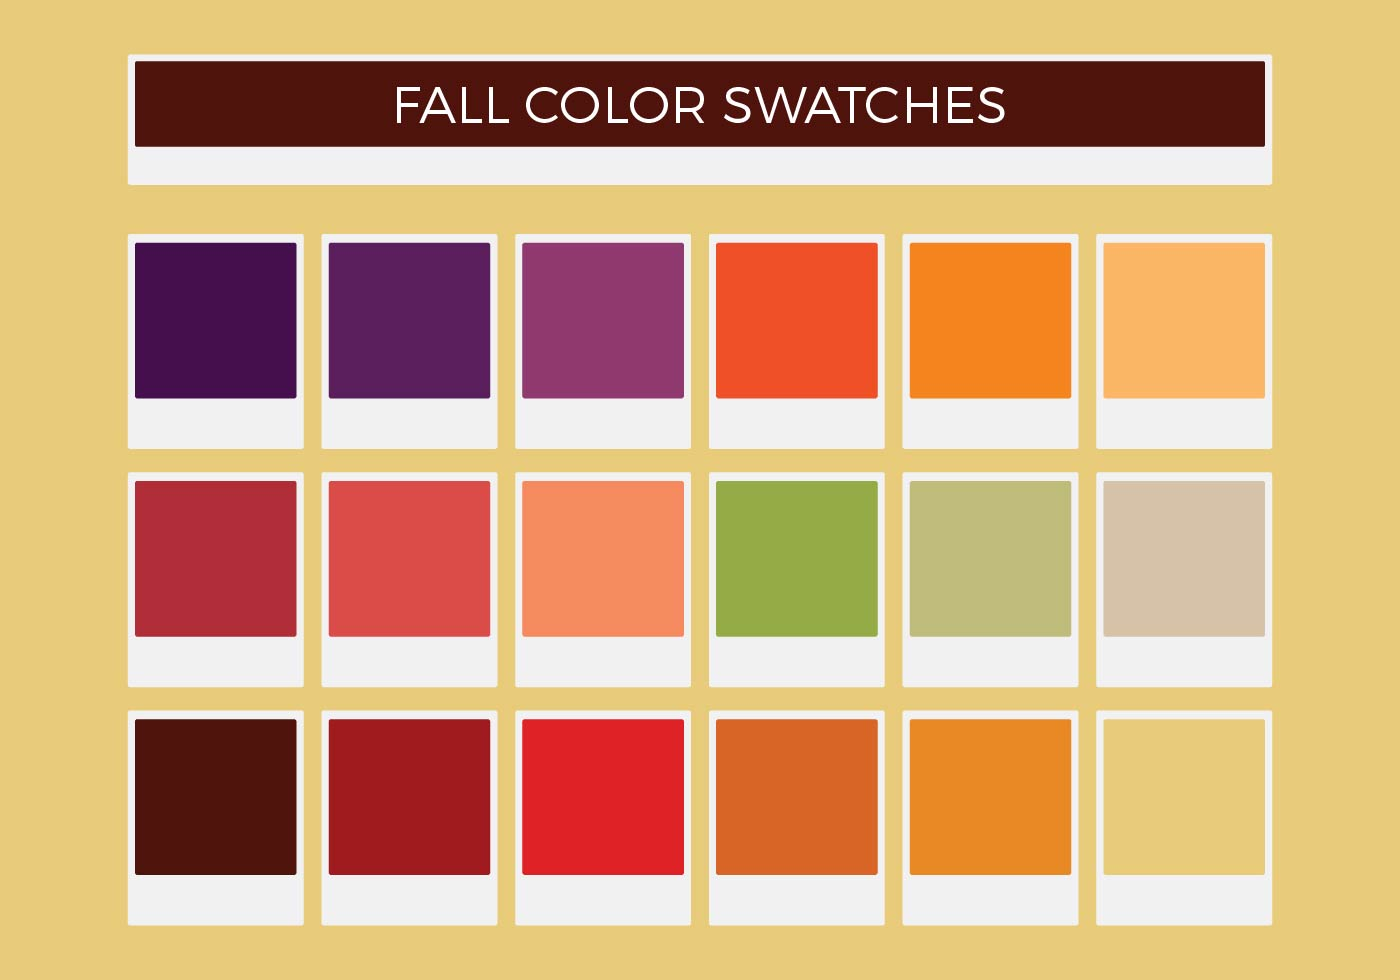 Free Fall Vector Color Swatches - Download Free Vector Art, Stock ...